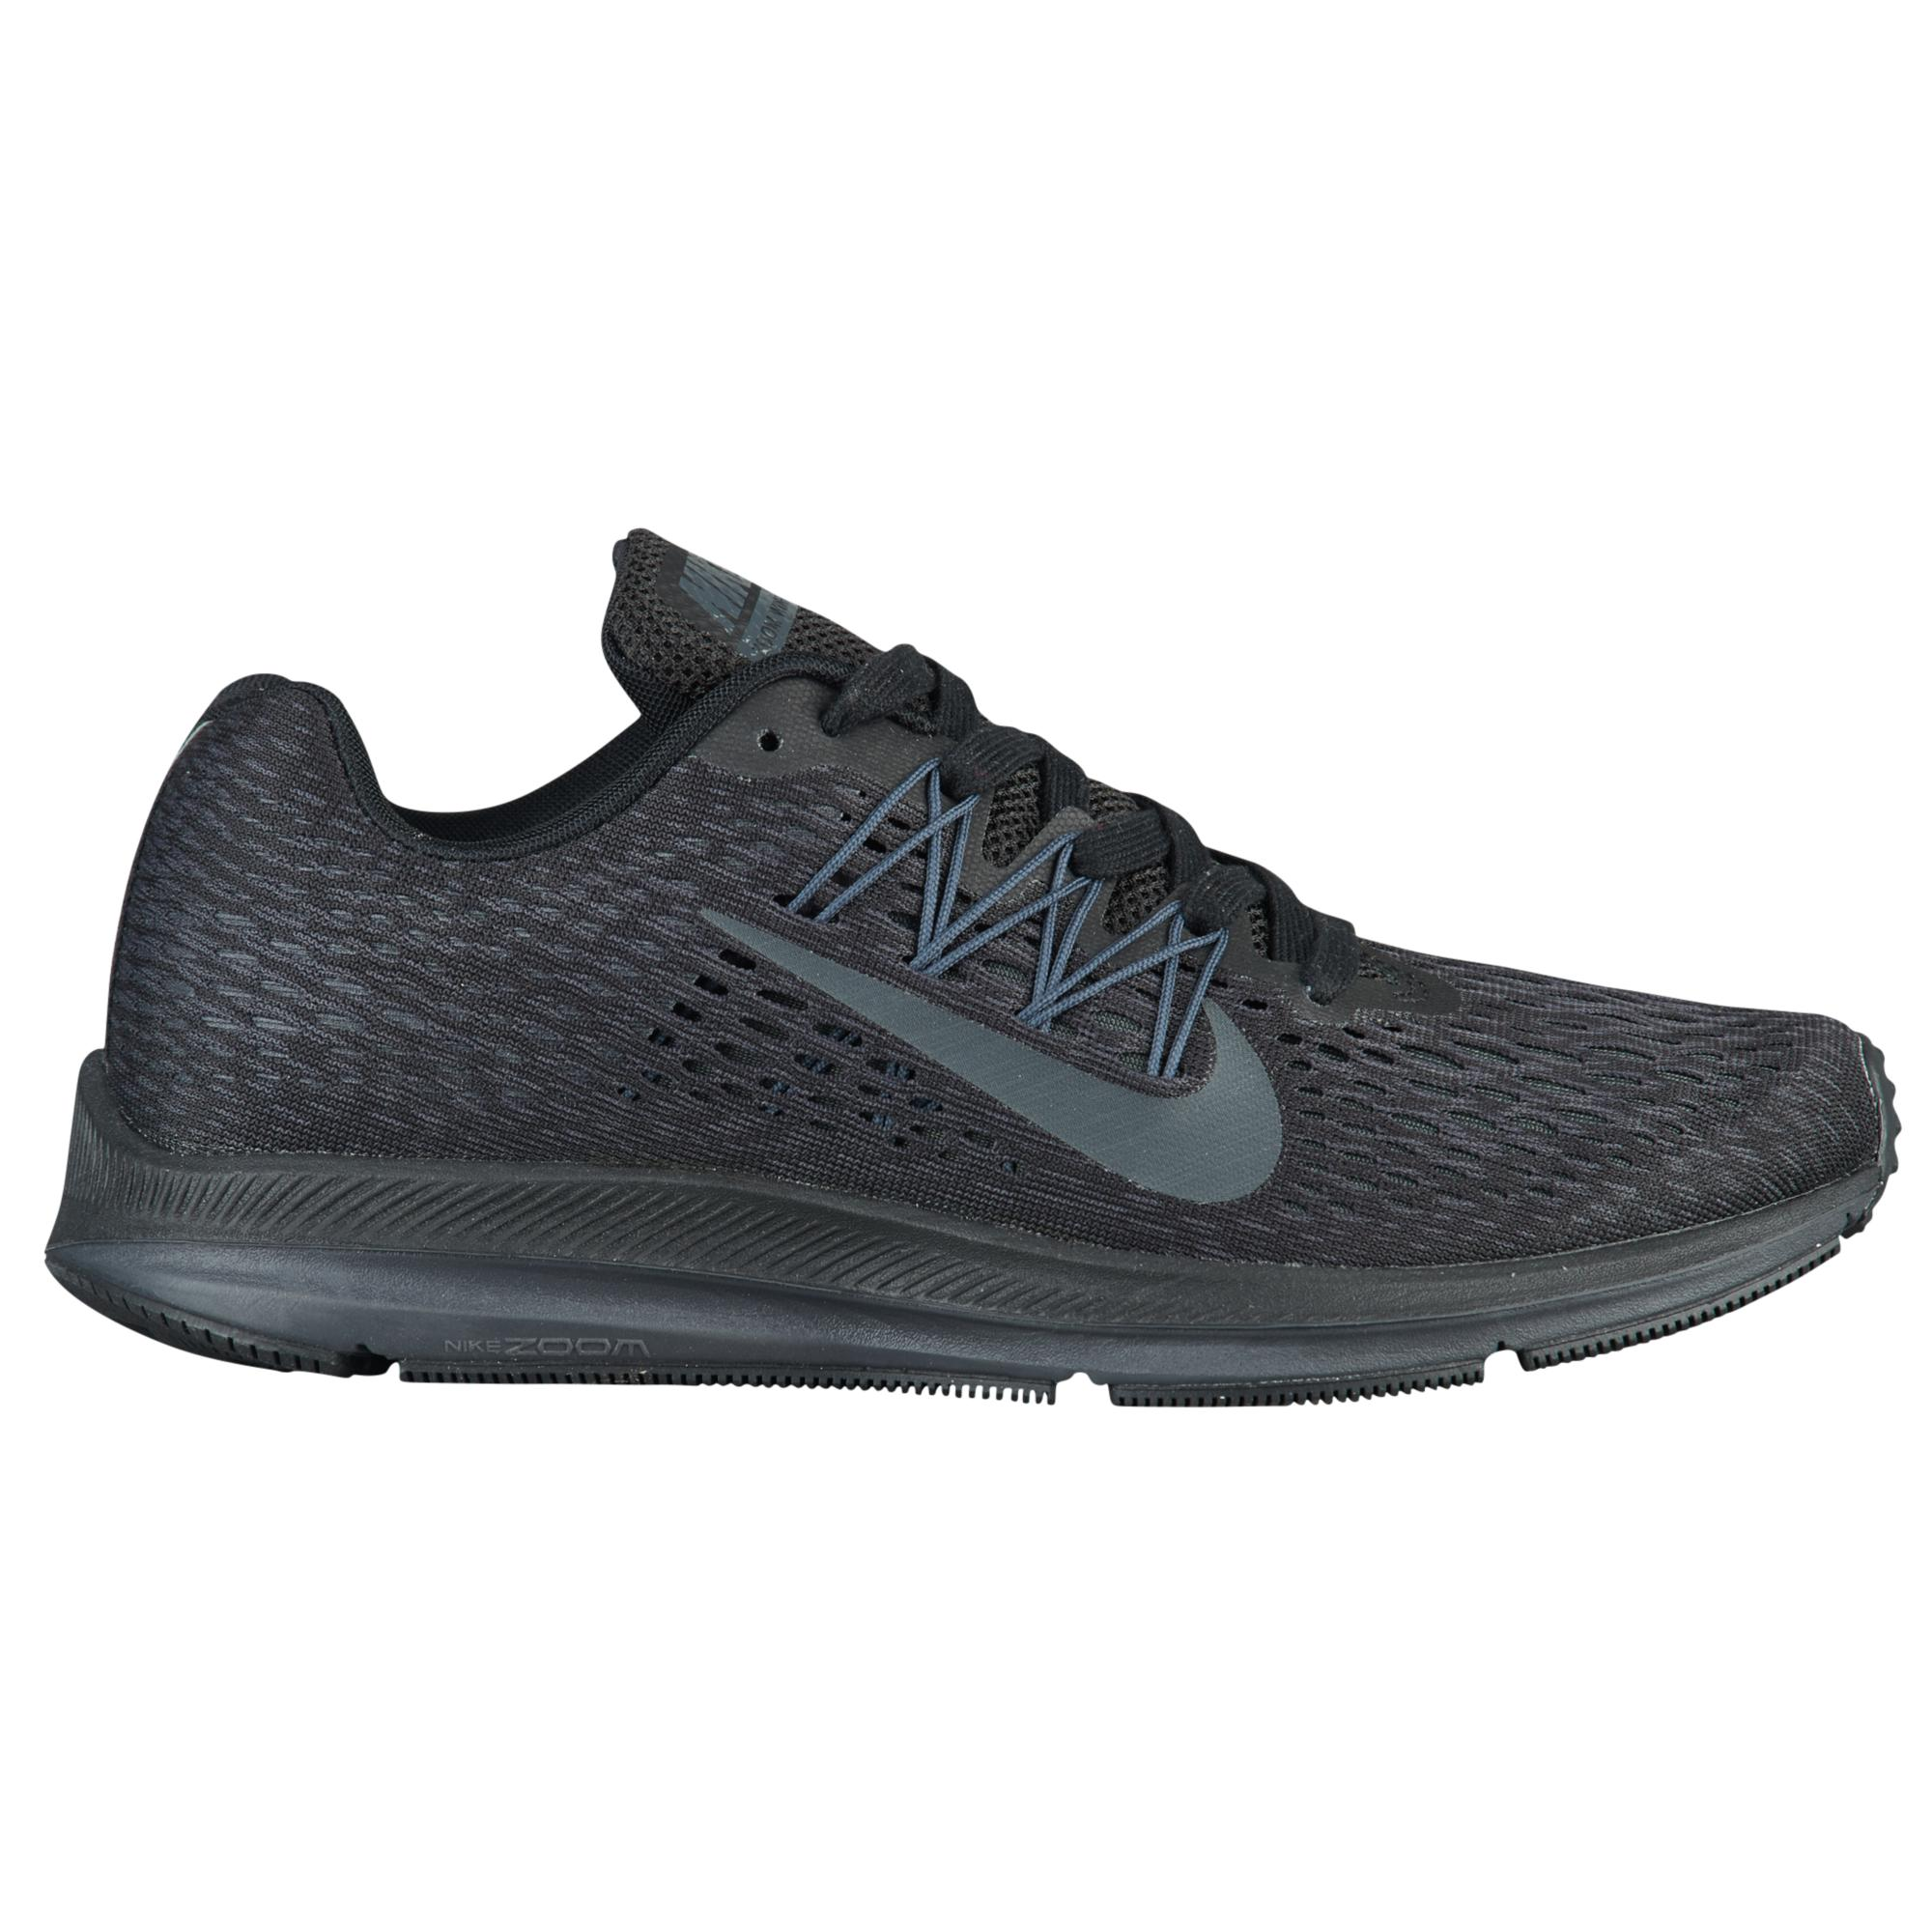 617dc2d524 Lyst - Nike Zoom Winflo 5 for Men